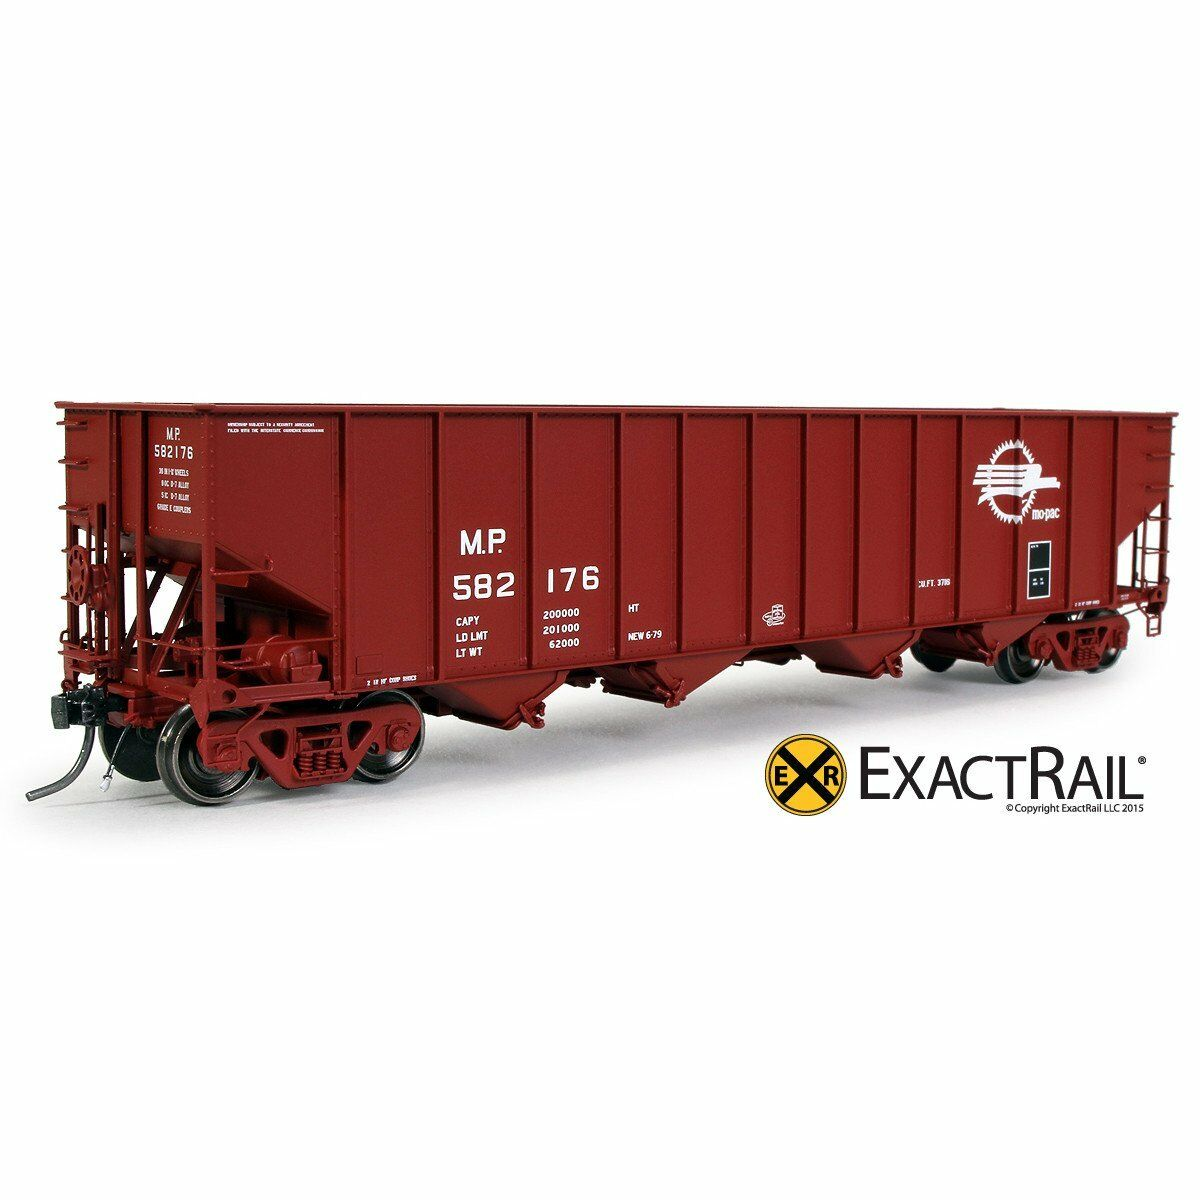 Exact Rail Platinum HO Missouri Pacific 3737 Hopper 582252 NEW EP-81509-9